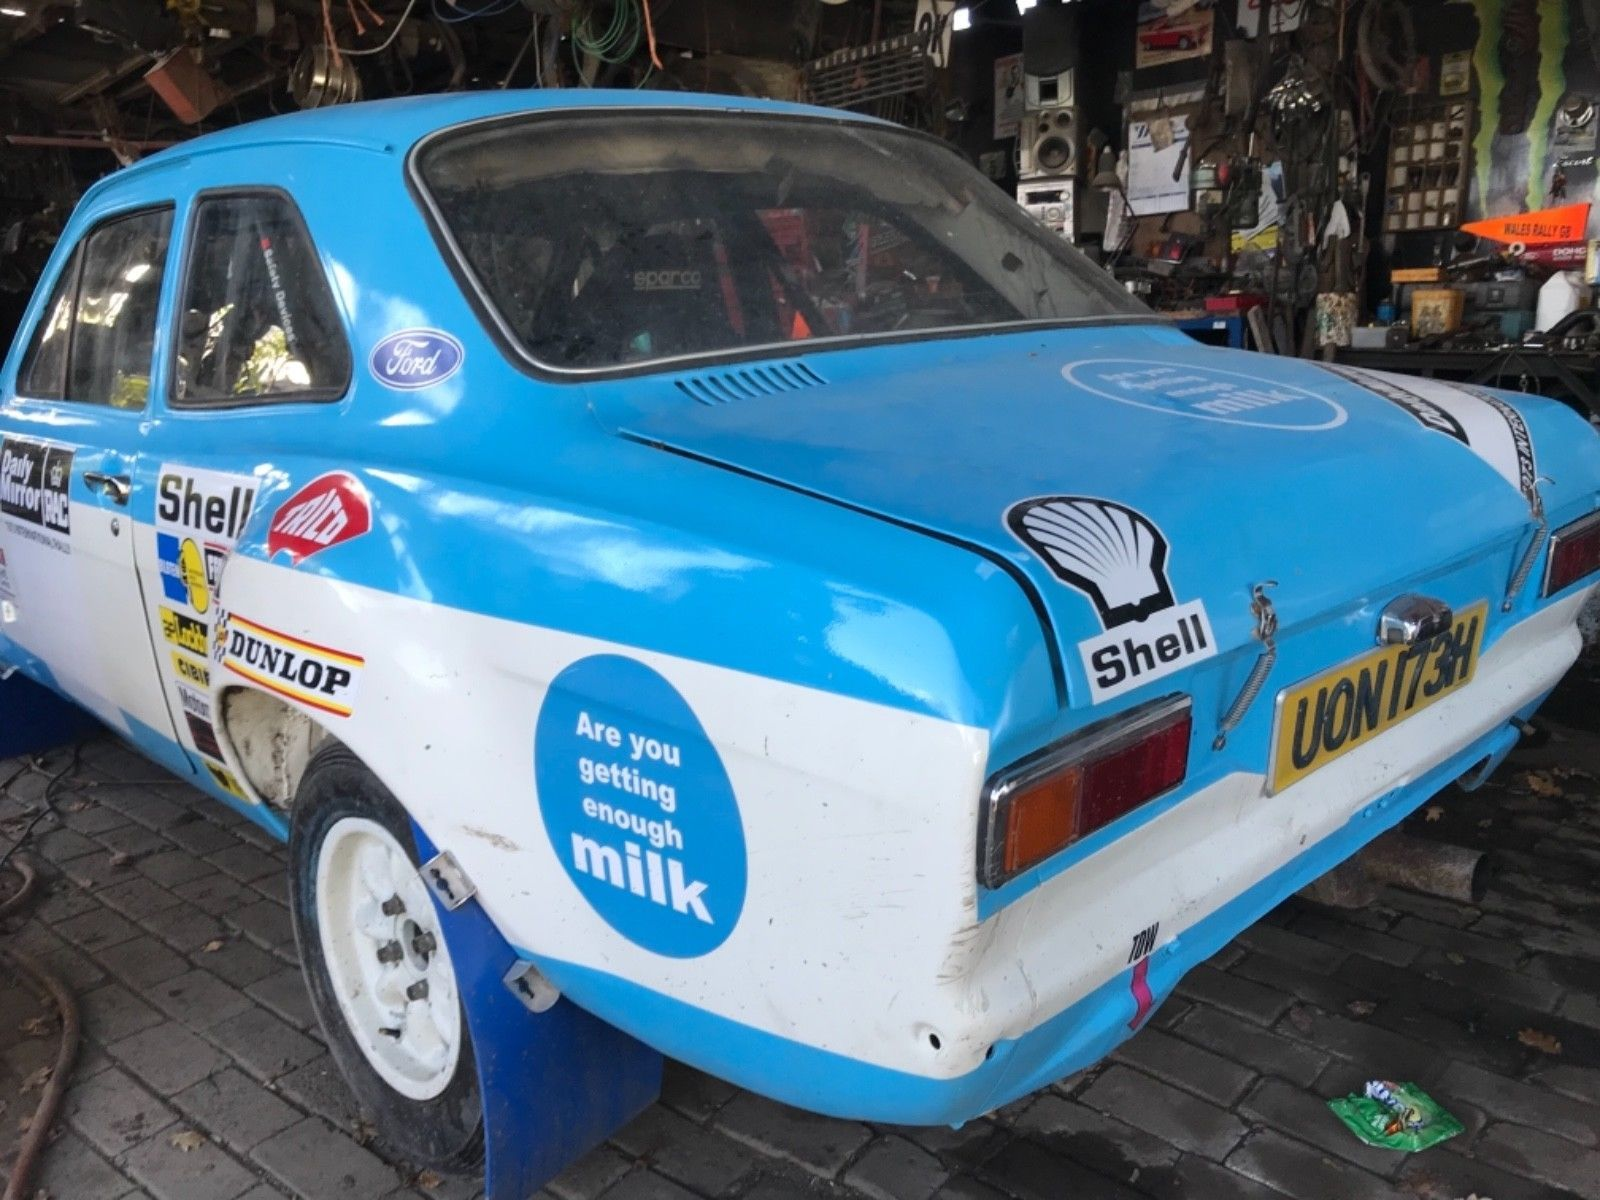 ford escort mk1 1970 historic rally car   Fast Fords   Pinterest ...